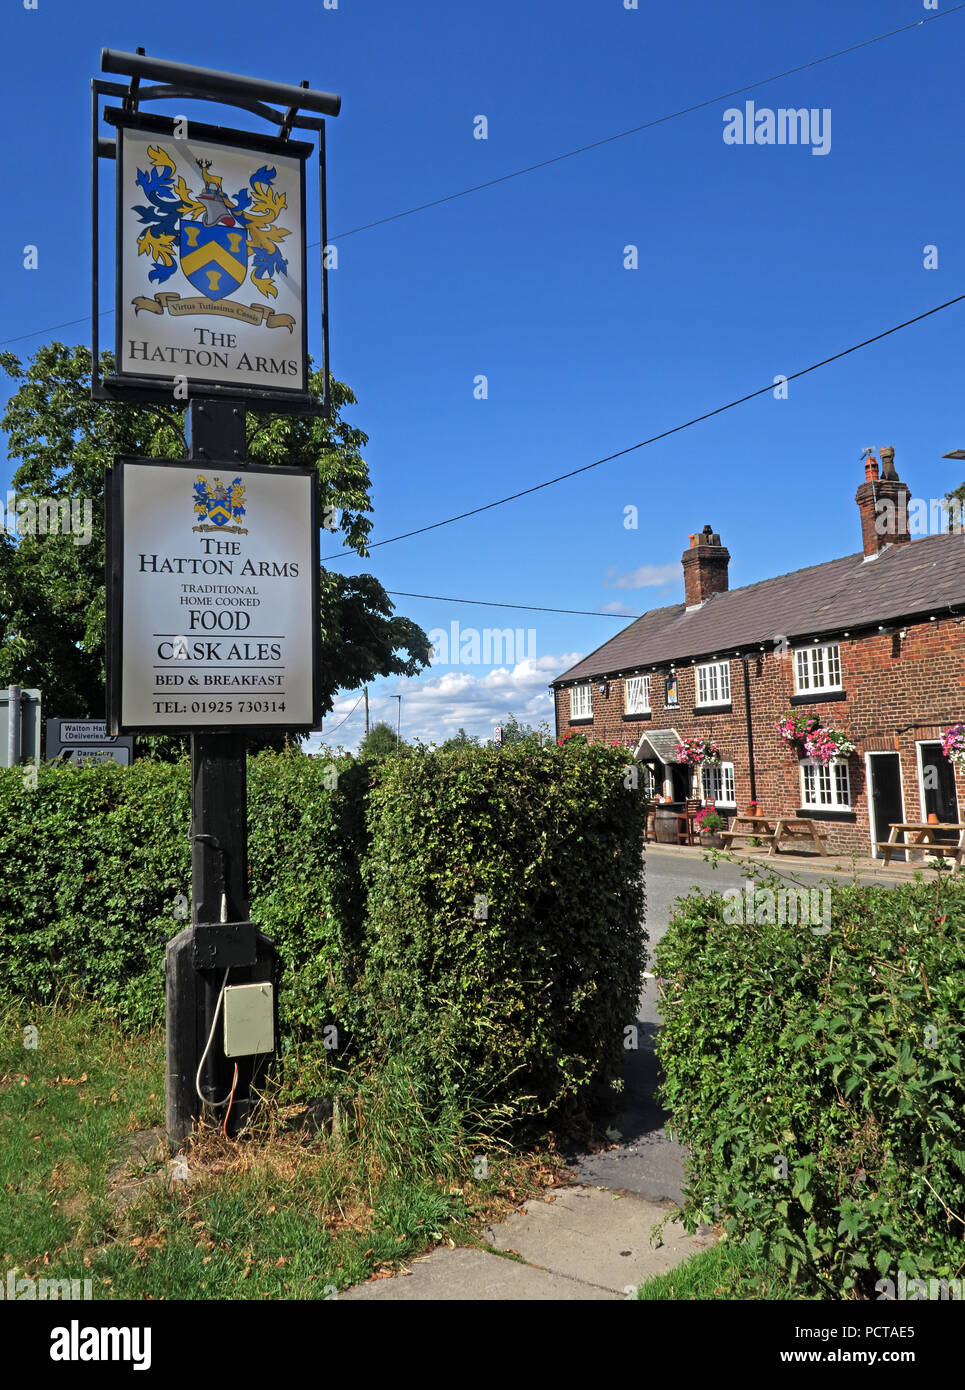 GoTonySmith,@HotpixUK,village,Cheshire villages,North West England,England,UK,Hatton Lane,Hatton Ln,WA4,WA4 4DB,Inn,Warrington,traditional pub,traditional village pub,listed,listed building,grade II,grade2,grade2 listed,Lord Daresbury,local,boozer,Lord Daresburys local,public house,Hatton Post Office,sign,pub sign,pubsign,coat of arms,Hatton Hall,CAMRA,real ale,ales,beers,summer,flowers,spring,Hatton Arms grade II listed pub bar